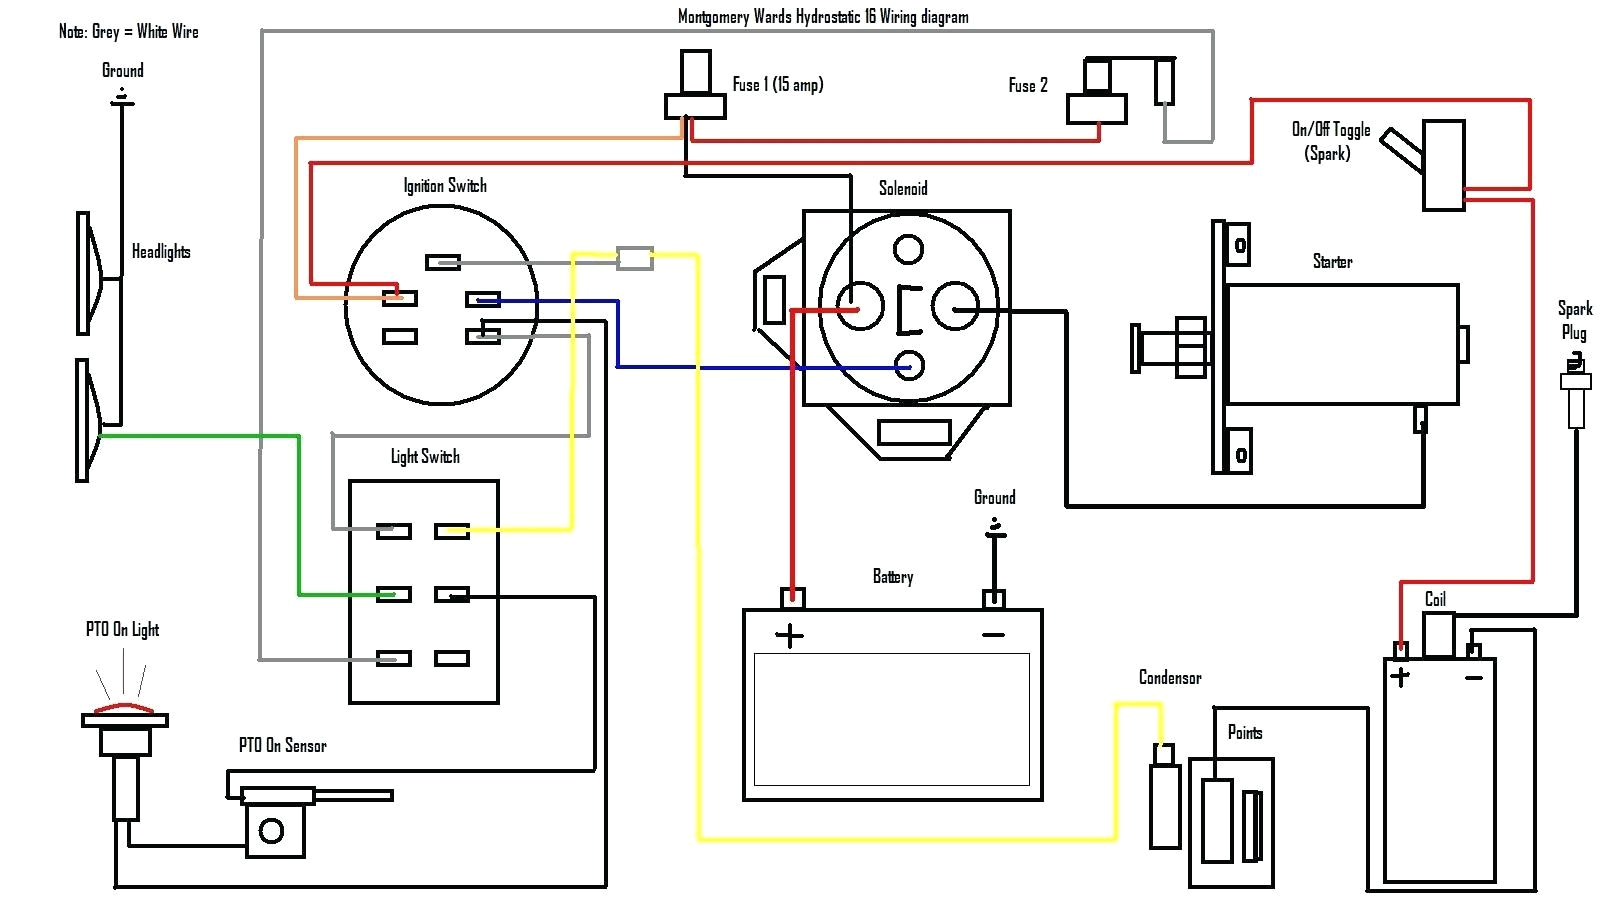 briggs and stratton ignition coil wiring diagram fresh briggs stratton ignition wiring electrical work wiring diagram